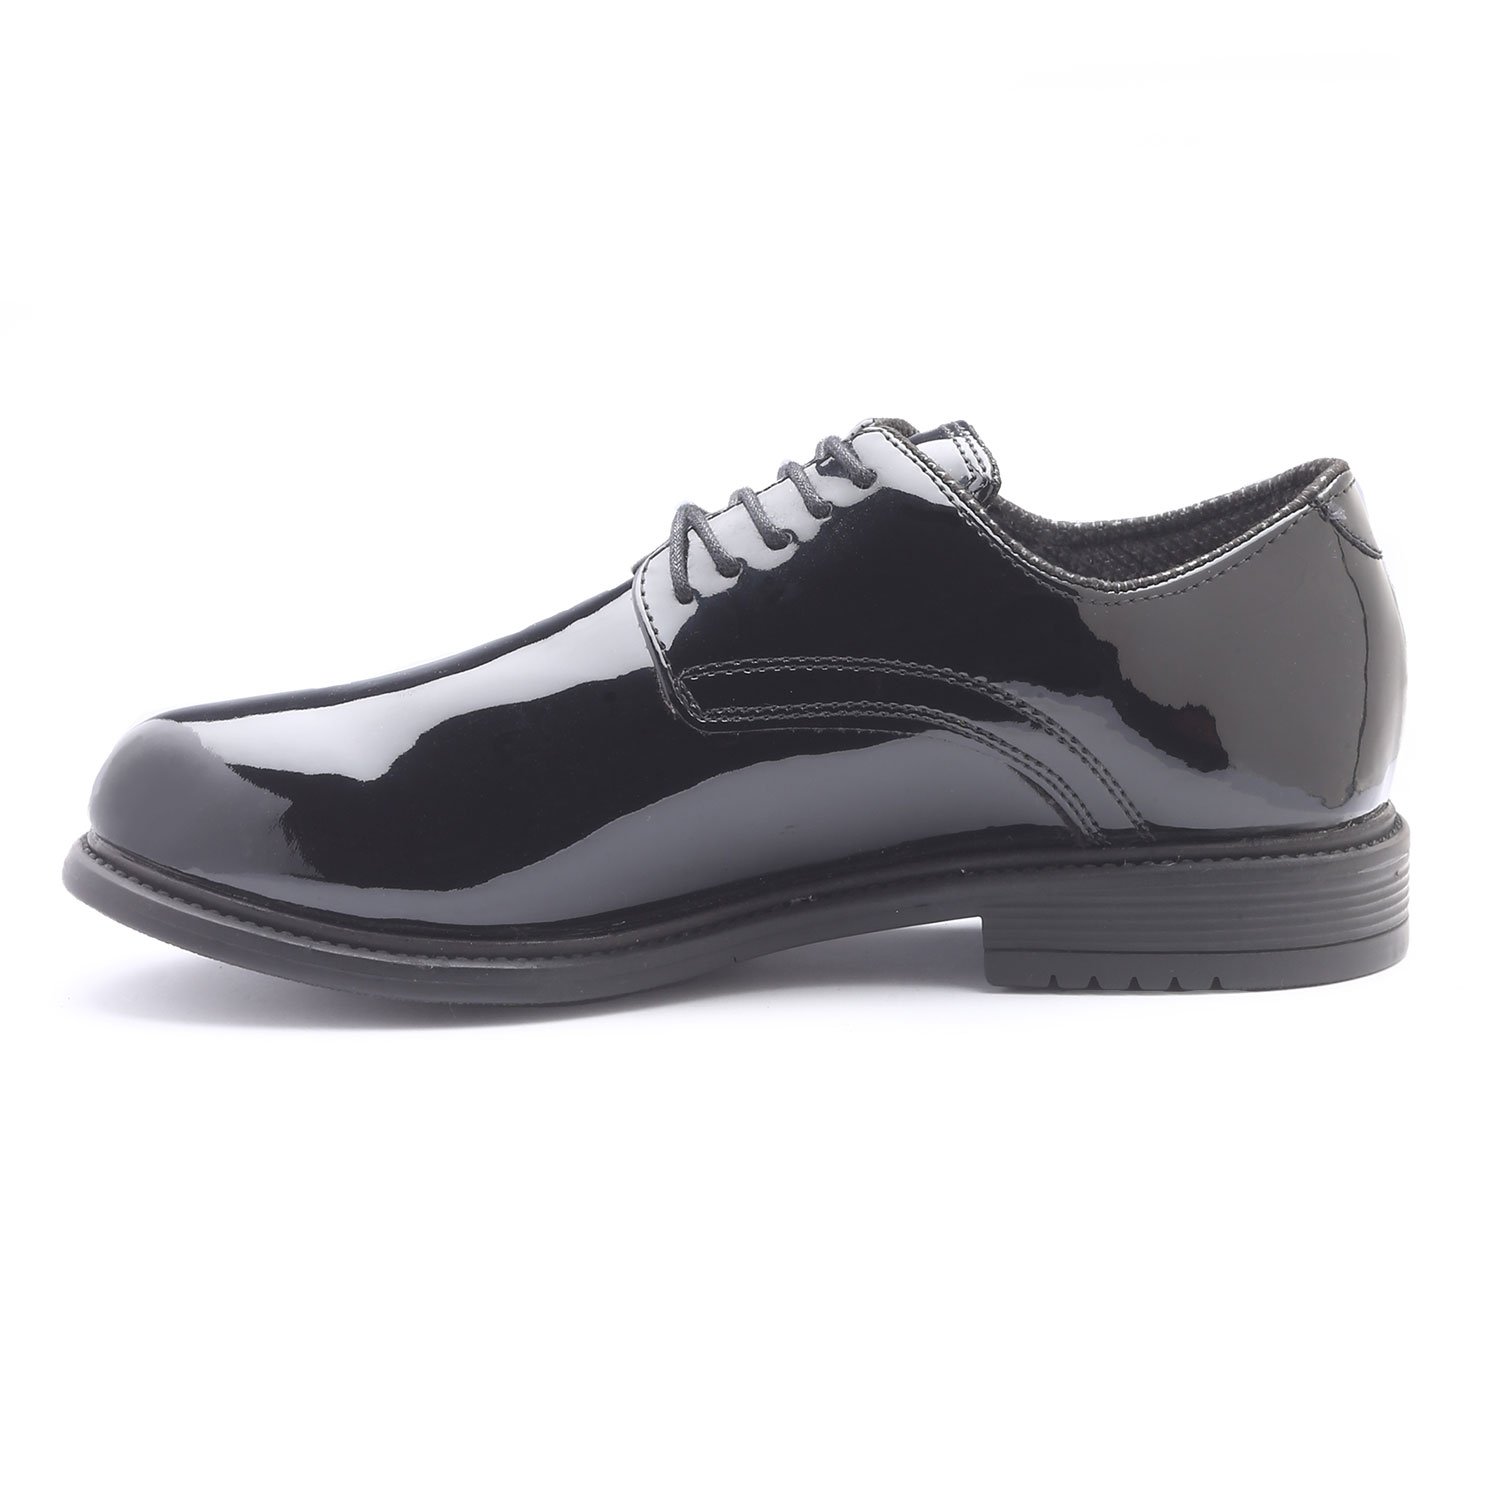 LawPro Hi Gloss Oxfords